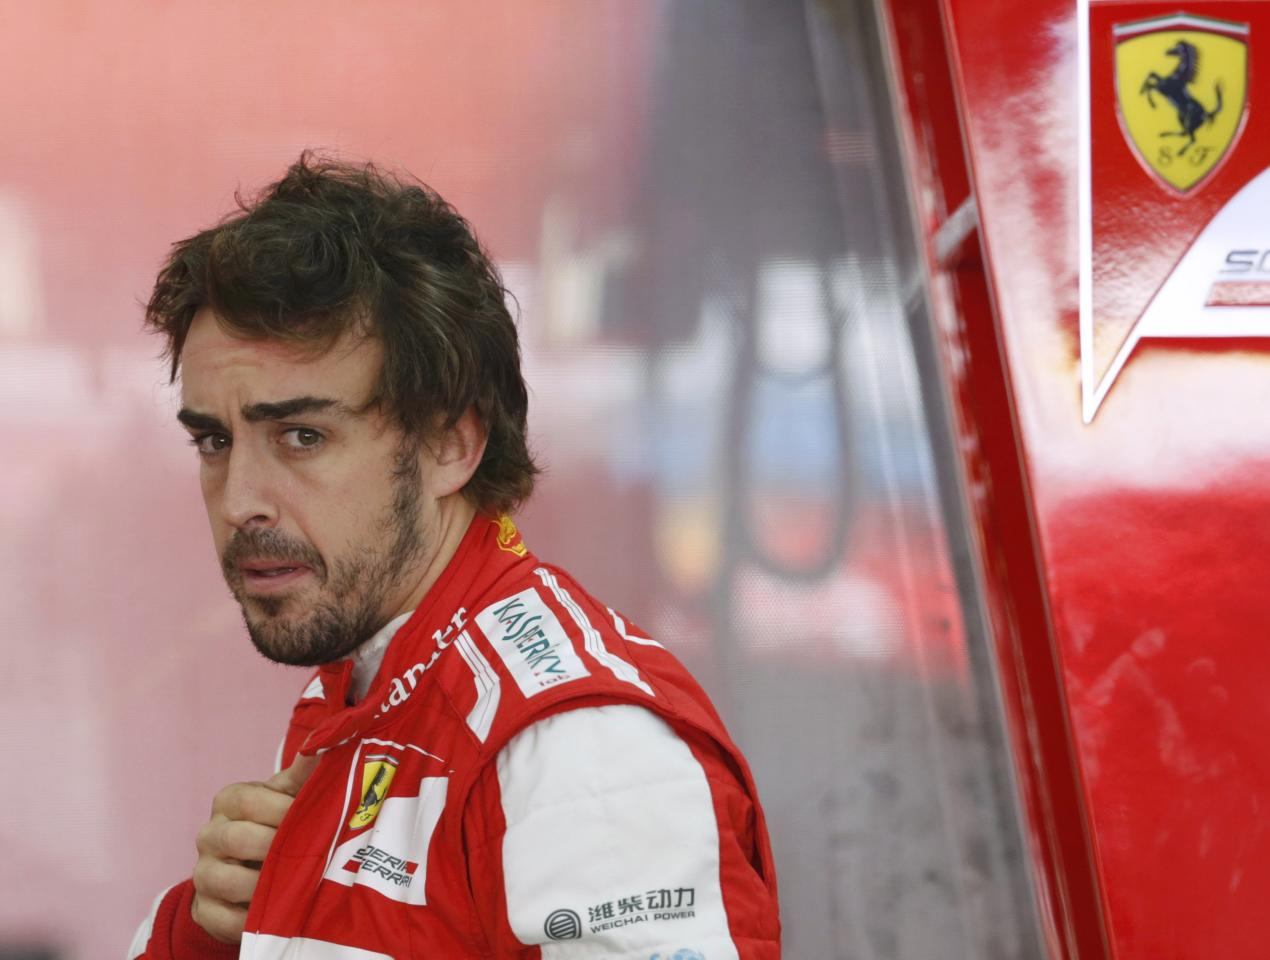 Ferrari Formula One driver Fernando Alonso of Spain looks on during the third practice session of the Korean F1 Grand Prix at the Korea International Circuit in Yeongam, October 5, 2013. REUTERS/Lee Jae-Won (SOUTH KOREA - Tags: SPORT MOTORSPORT F1 TPX IMAGES OF THE DAY)